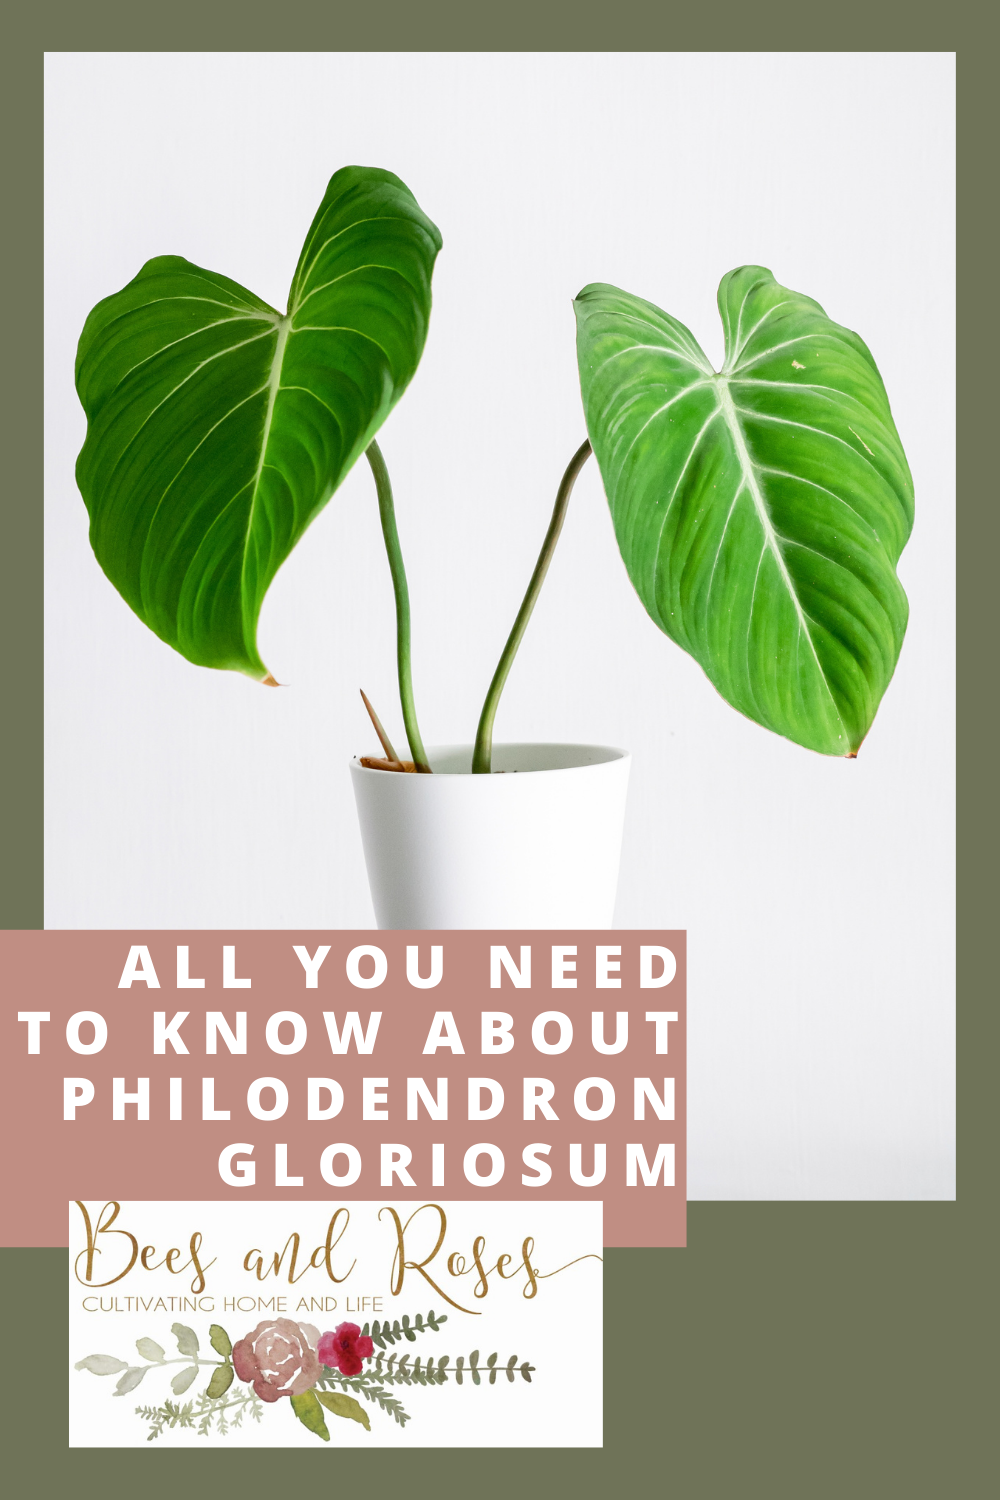 Beesandroses.com makes gardening accessible to people of all skill levels! Find out what you should be growing and how to let your plants thrive! Check out all you need to know before growing philodendron gloriosum!